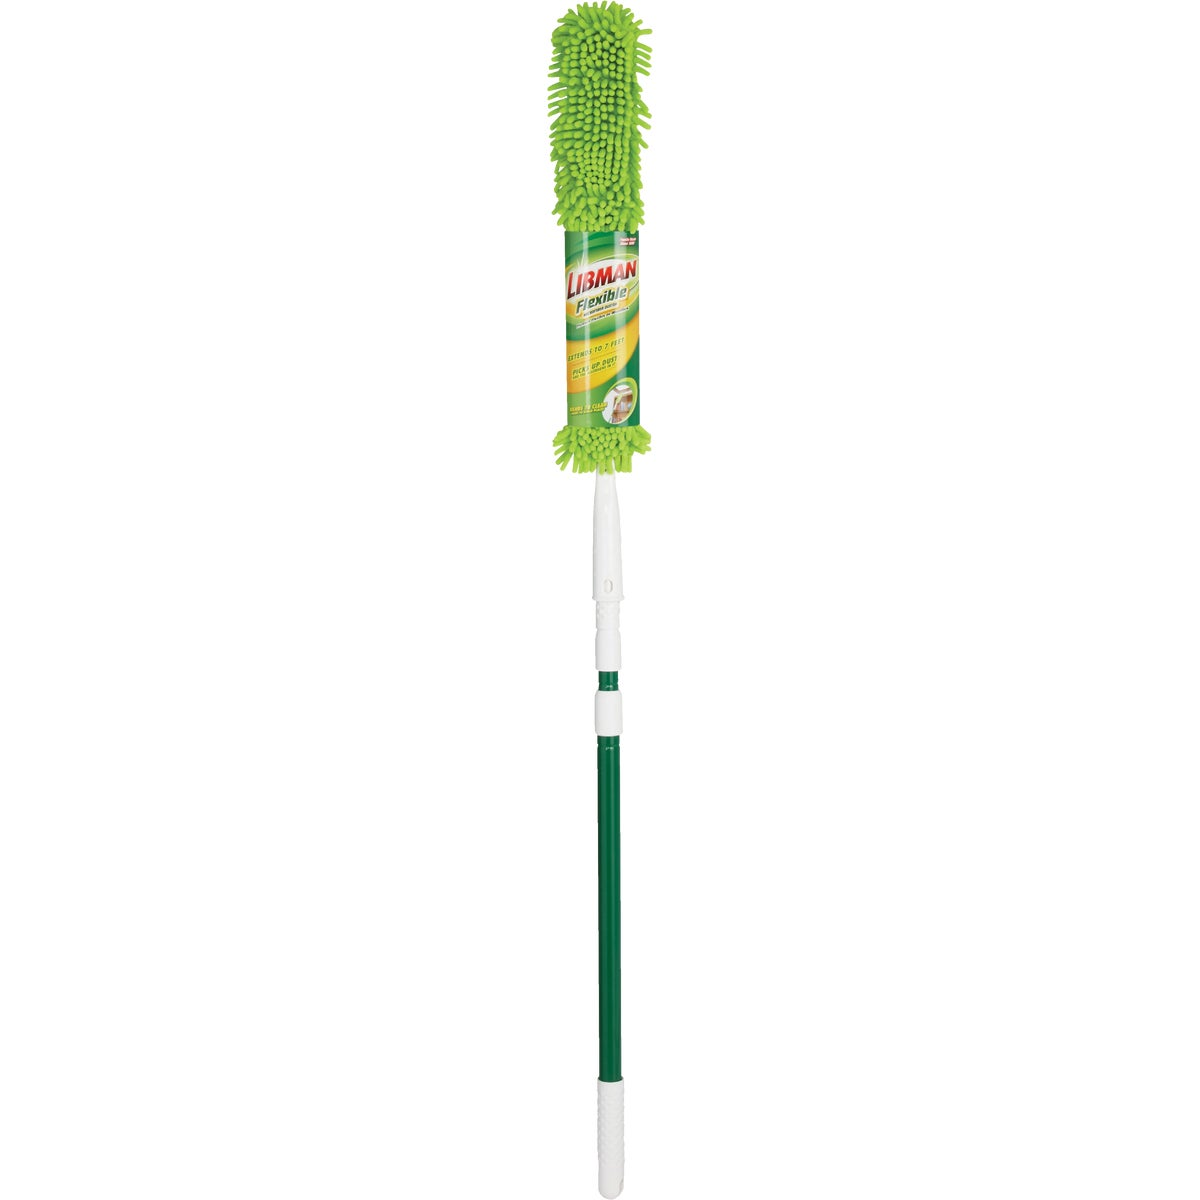 "42"" MICROFIBR DUSTER SET - 139153 by F H P-lp"